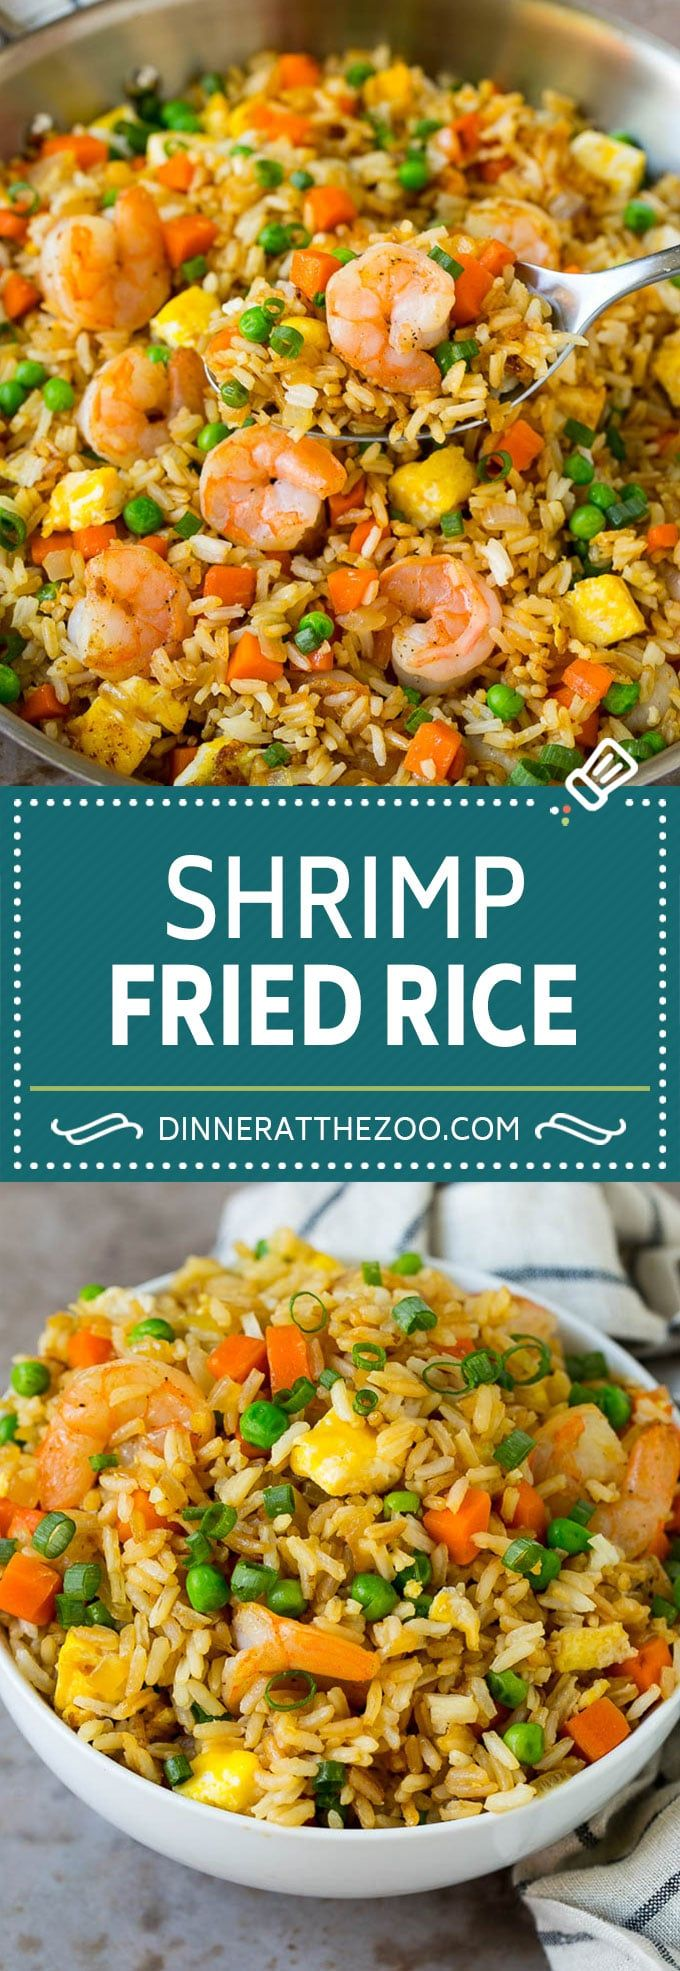 Shrimp Fried Rice Recipe | Chinese Fried Rice #rice #shrimp #peas #carrots #sidedish #dinner #dinneratthezoo #seasonedricerecipes